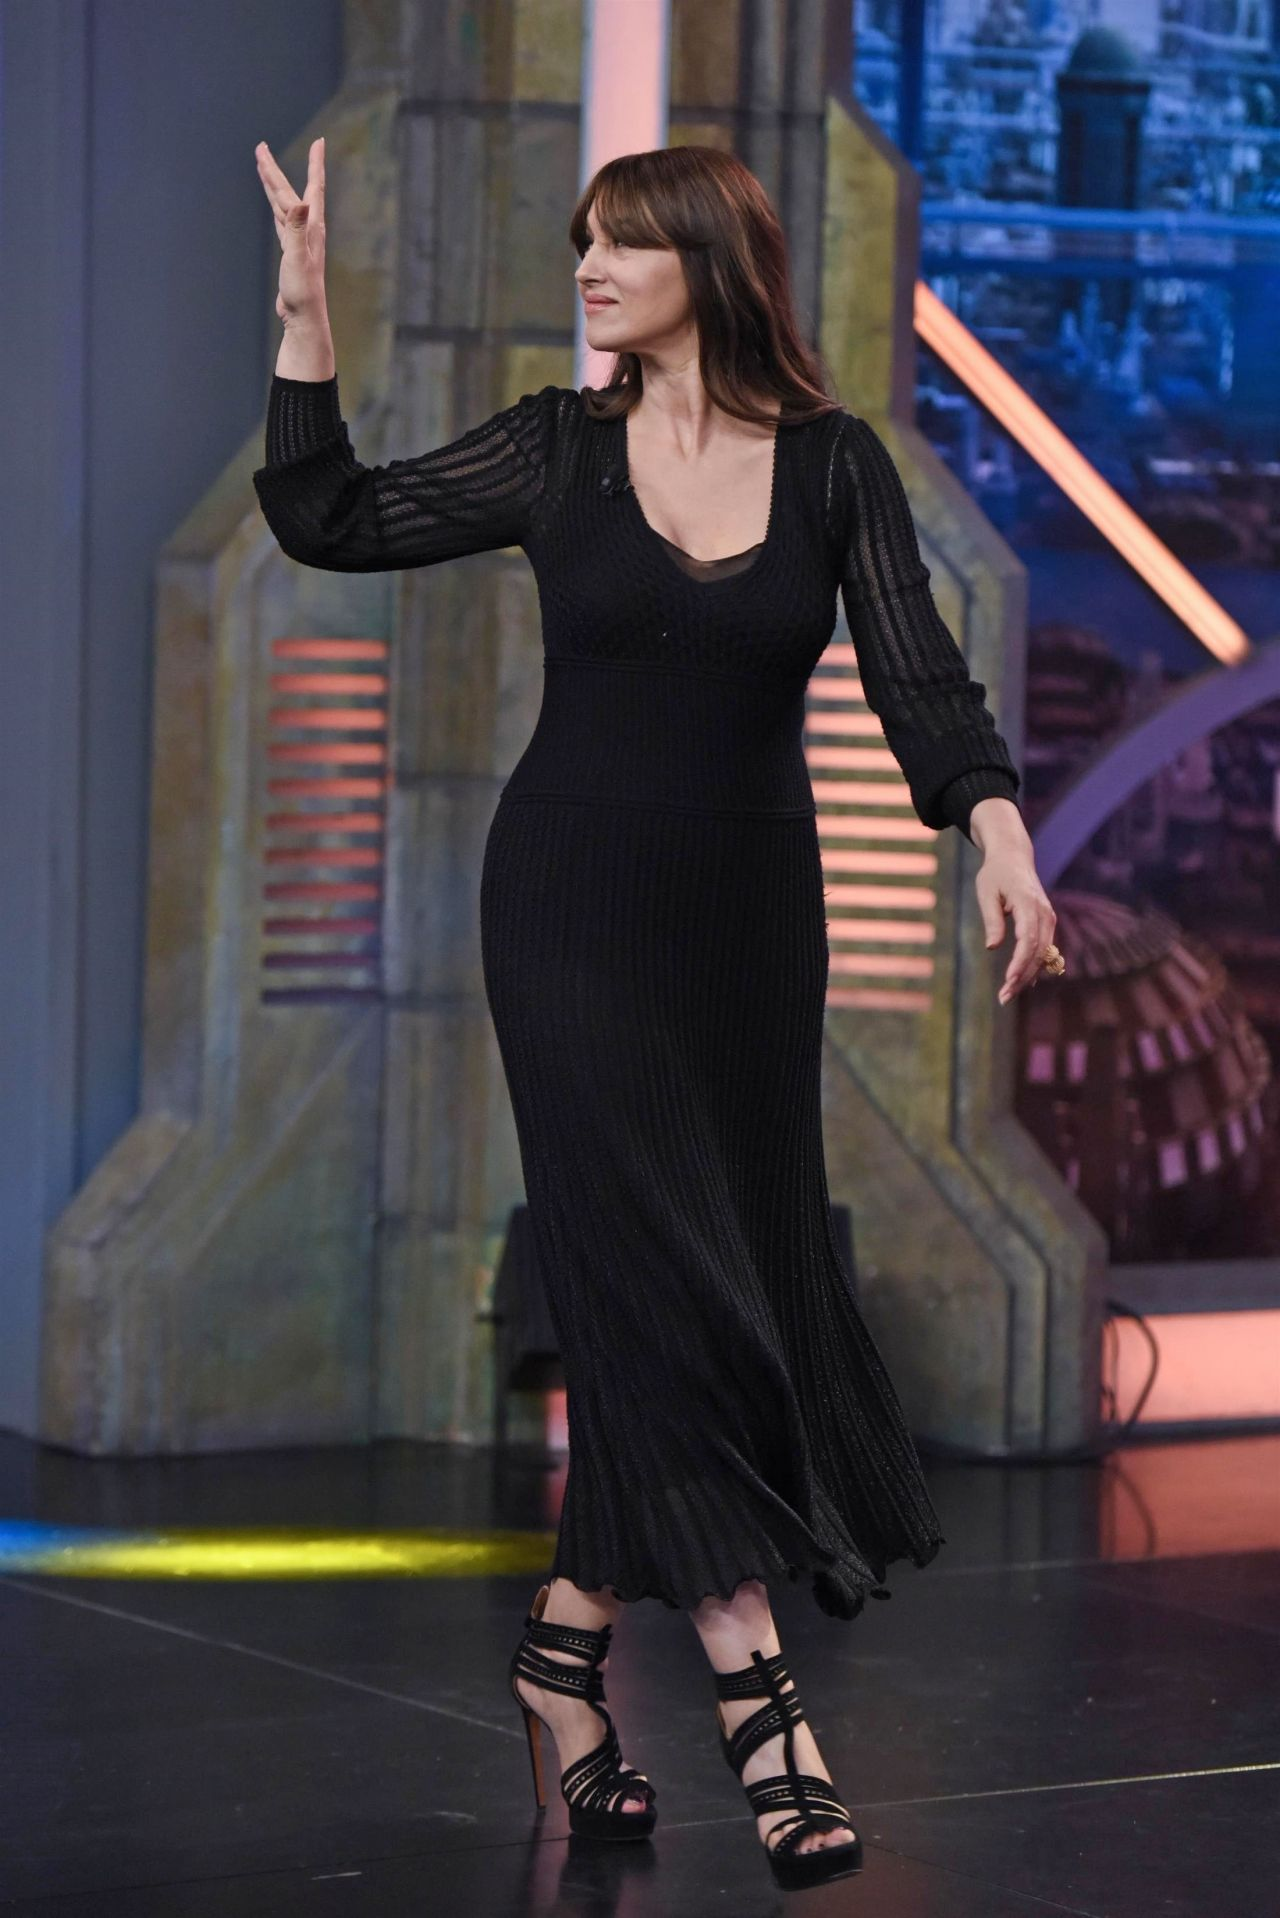 Monica Bellucci Appeared on El Hormiguero TV Show in ... Monica Bellucci